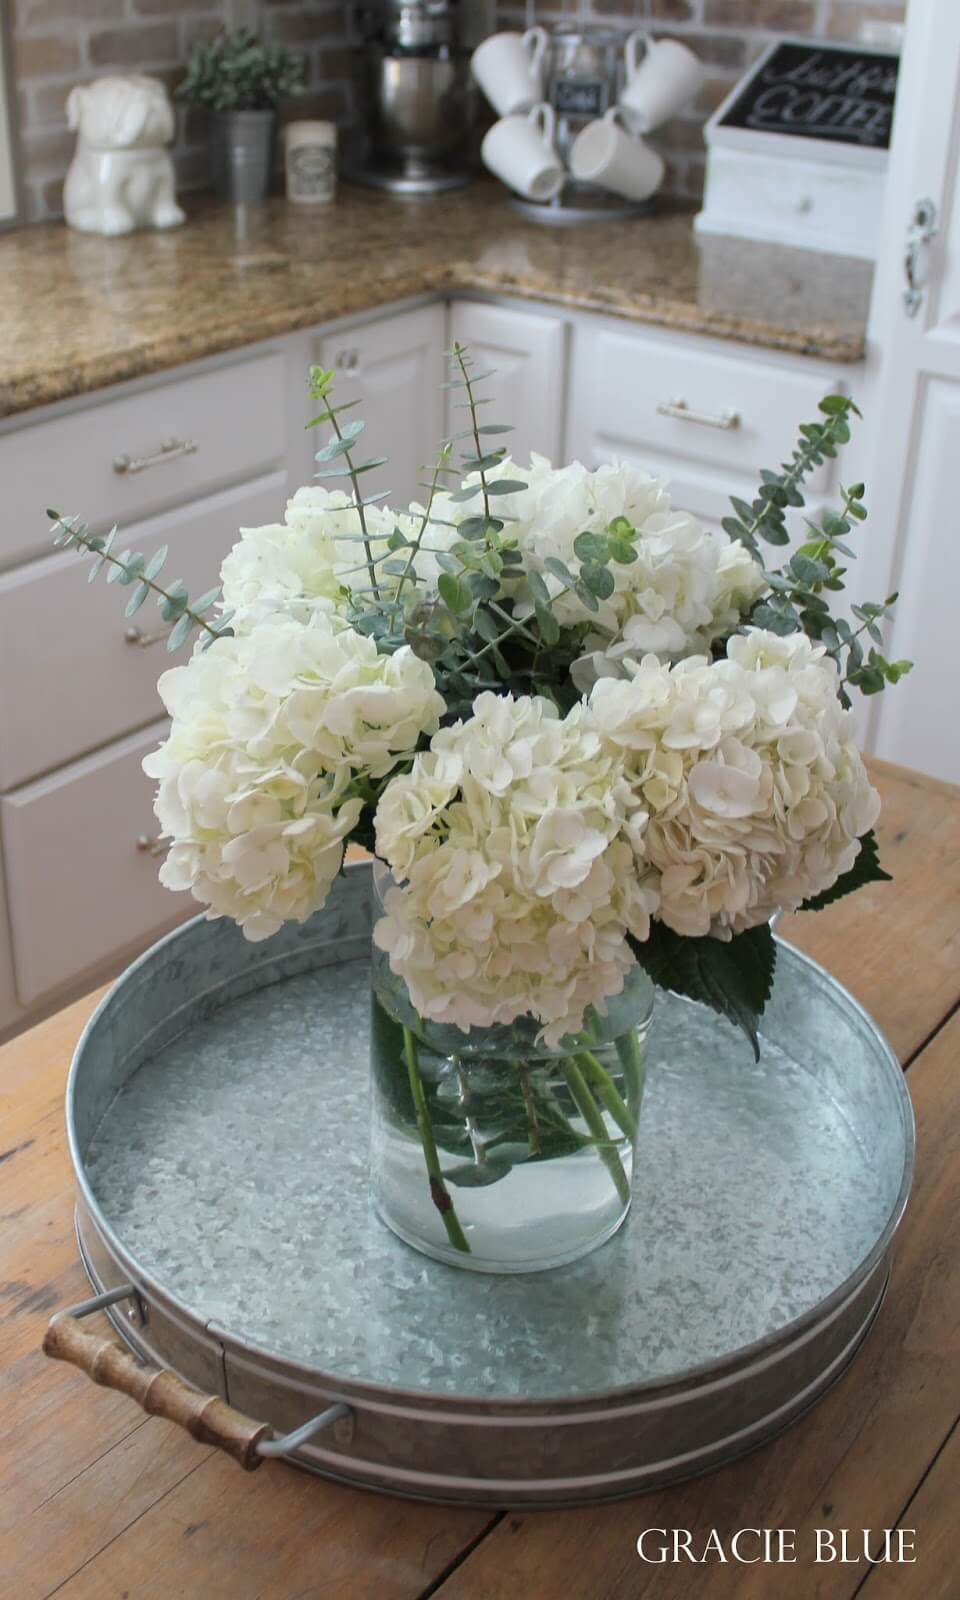 Lush Blossoms on a Galvanized Tray